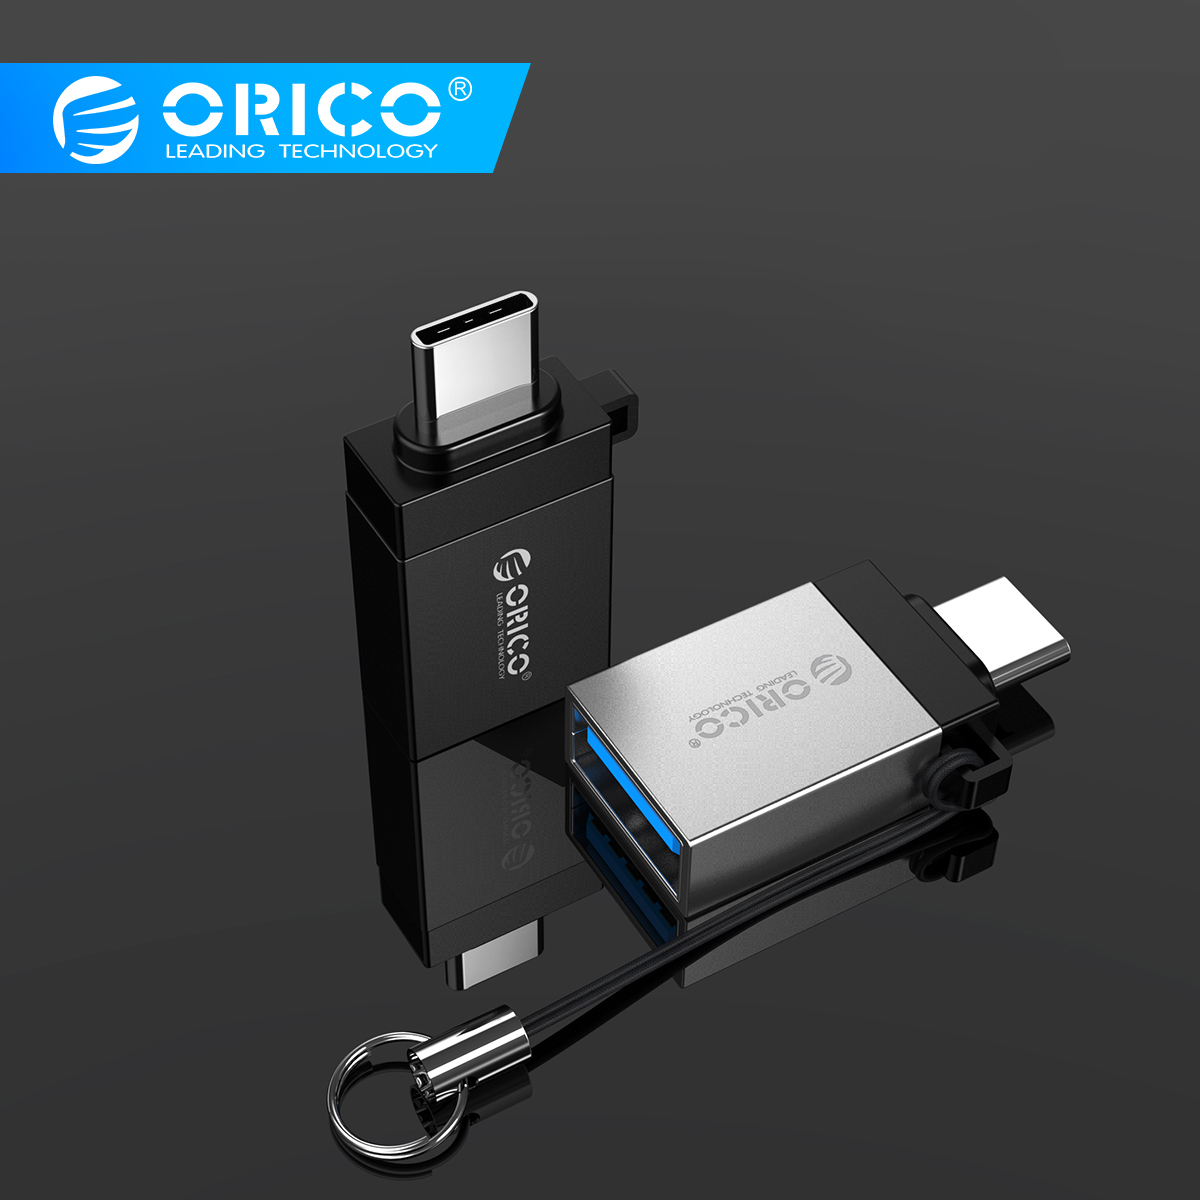 ORICO OTG USB 3.0 To Type C Micro B USB Type-C OTG Adapter Converter For Huawei Samsung Macbook OPPO Adapter